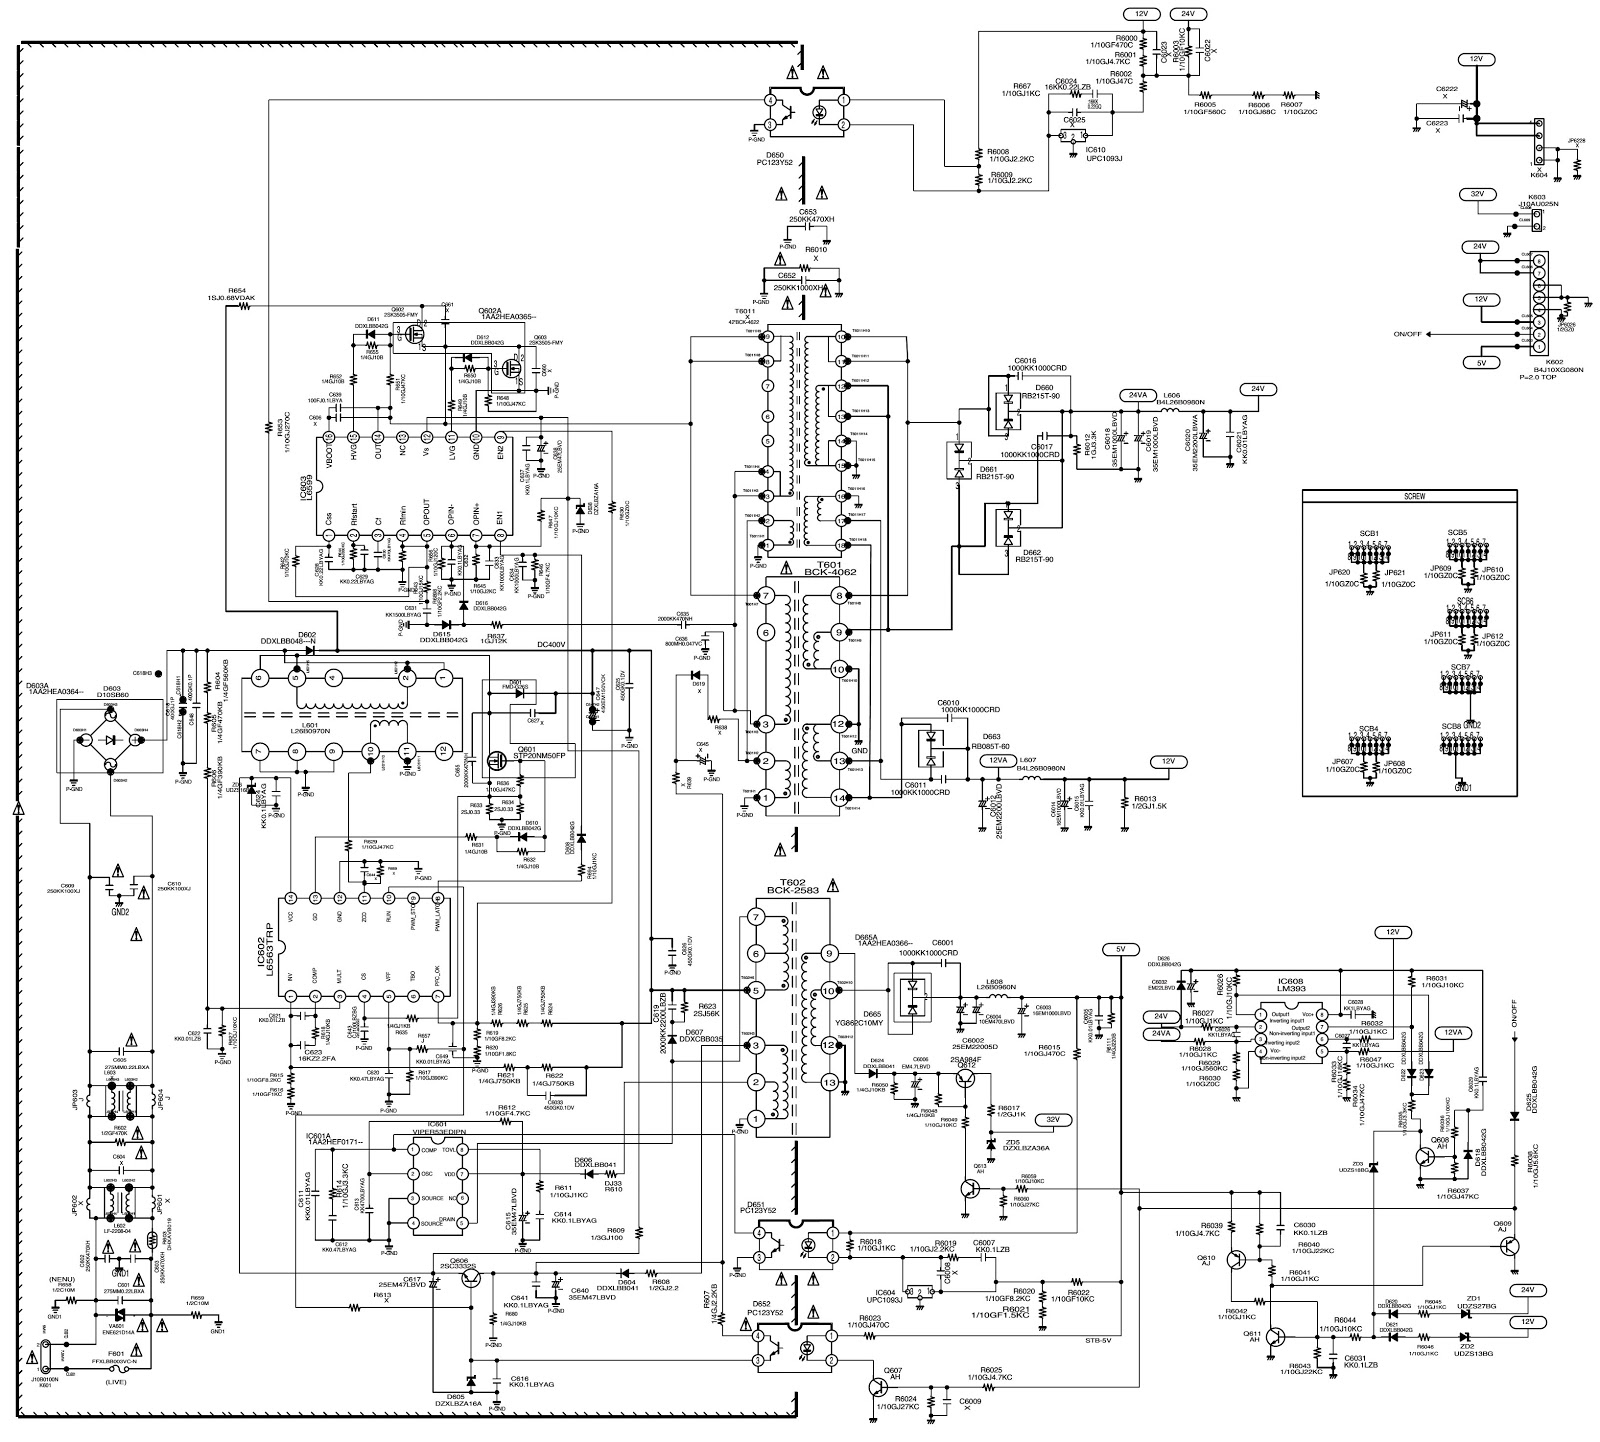 hight resolution of sanyo tv diagram wiring diagram yer sanyo tv diagram sanyo tv diagram